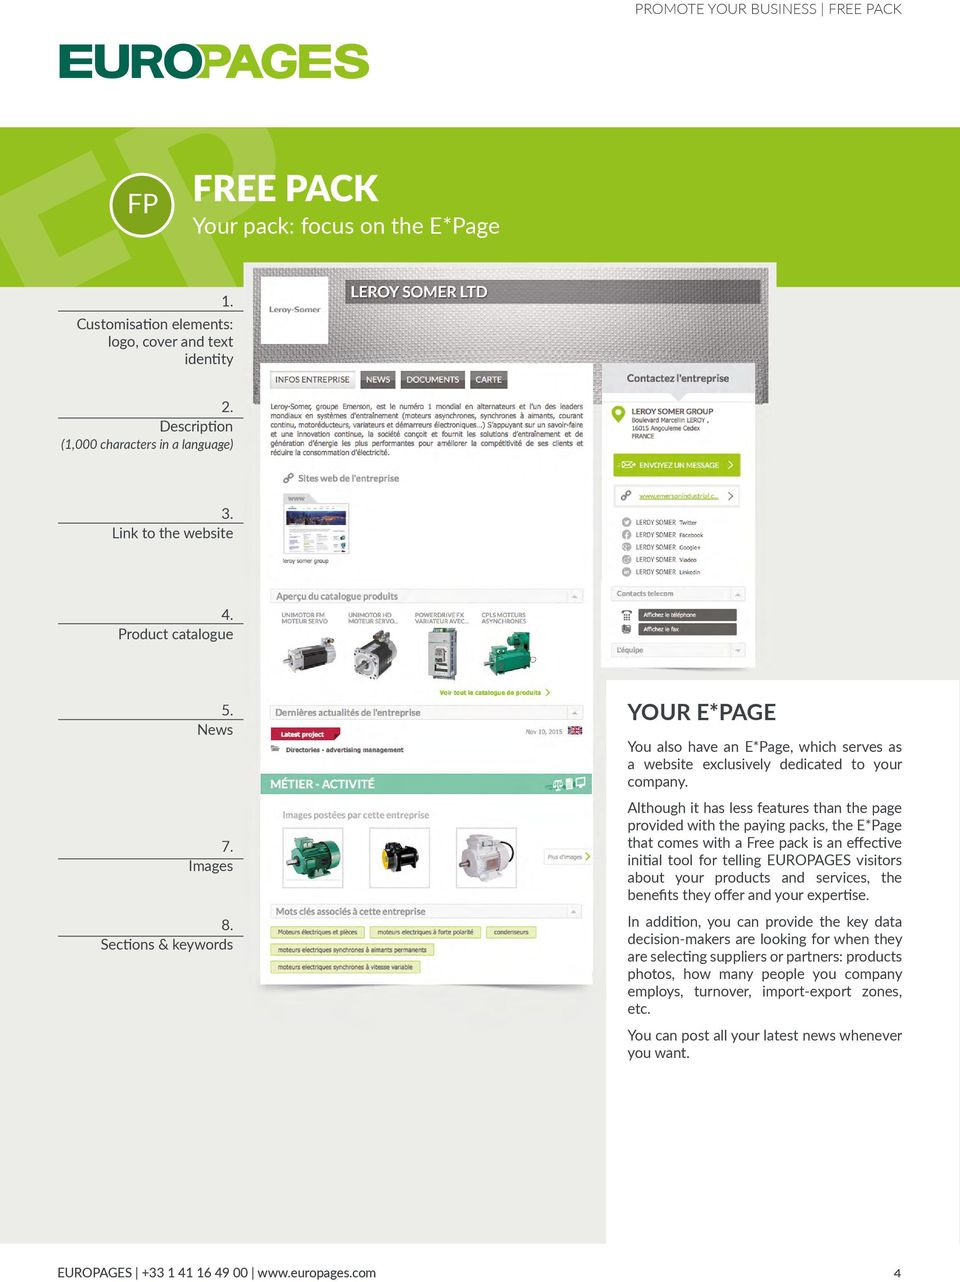 Although it has less features than the page provided with the paying packs, the E*Page that comes with a Free pack is an effective initial tool for telling EUROPAGES visitors about your products and